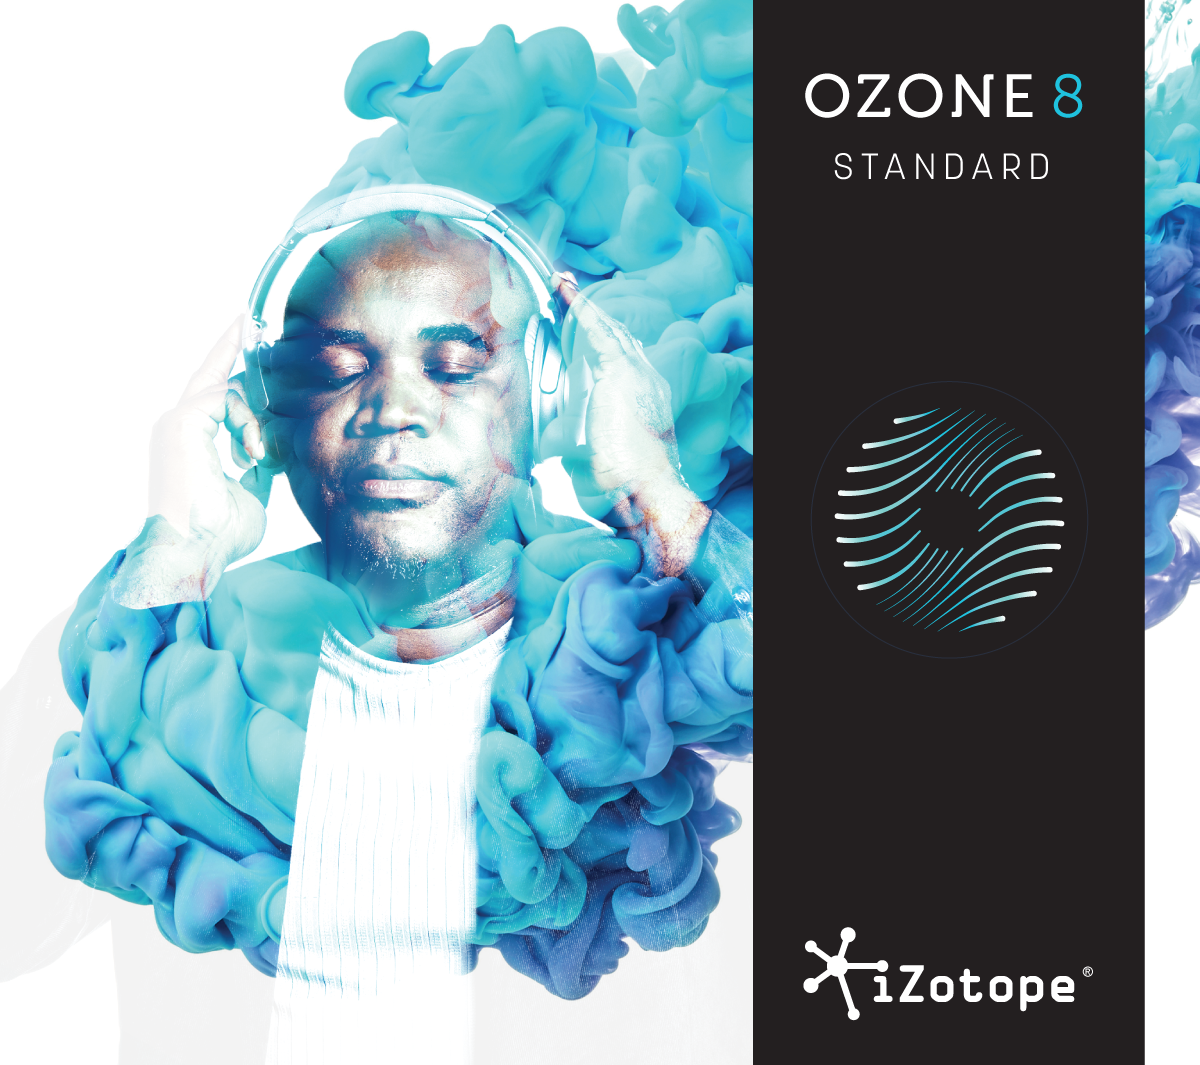 Ozone 8 Standard: Mastering Plug-in, iZotope [Online Code]